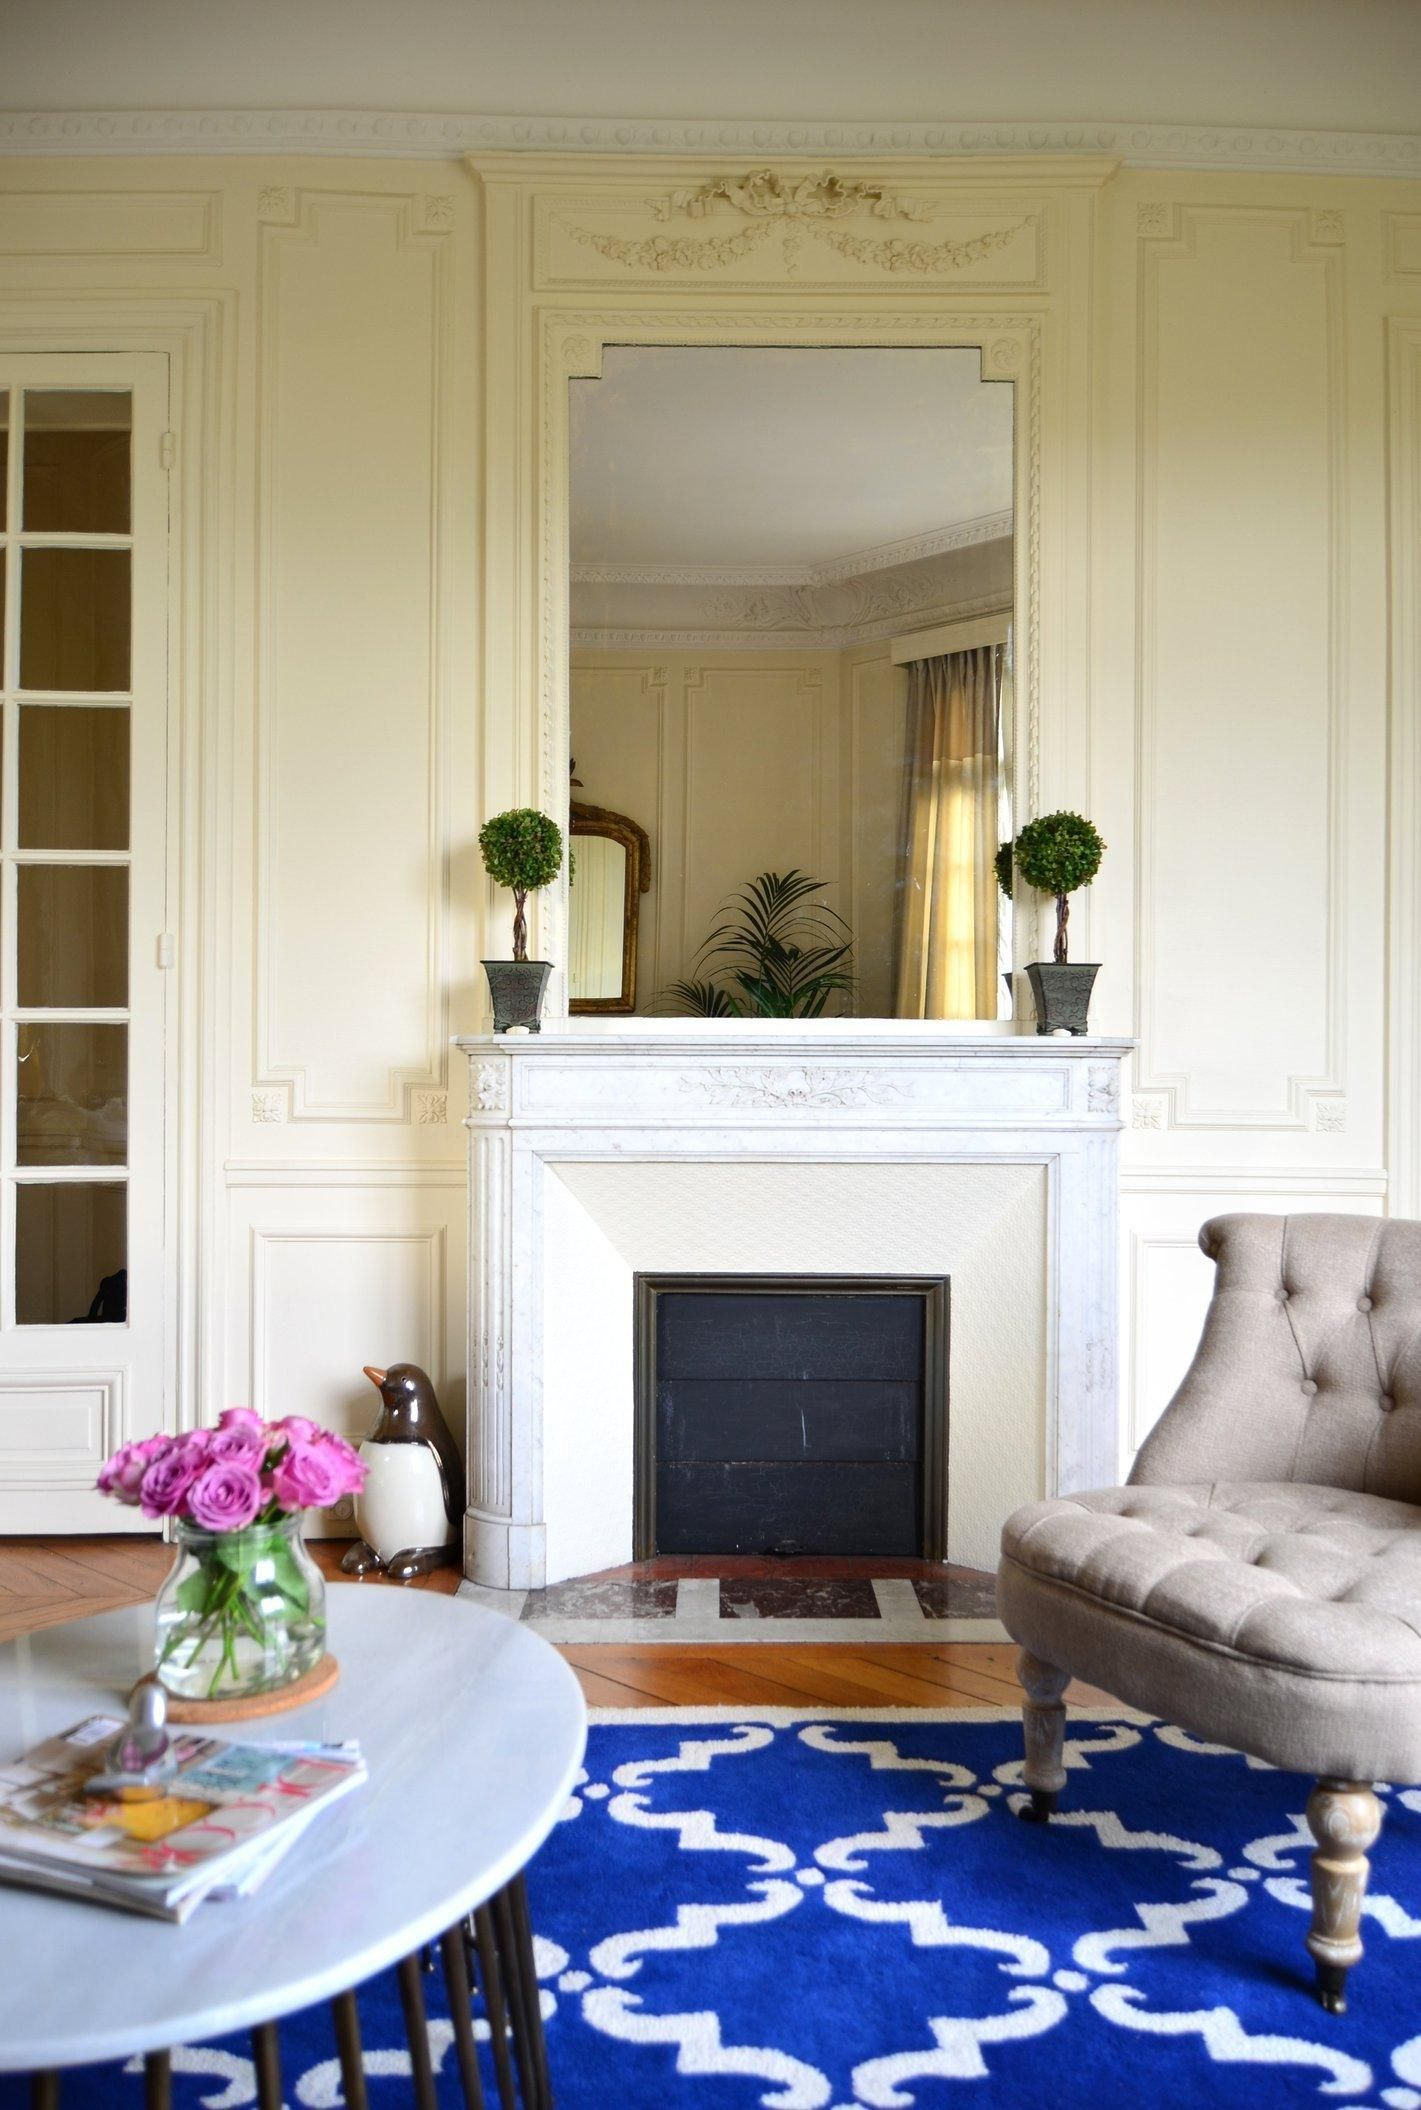 Will & Rebekah's Traditional with a Twist in Paris House Tour